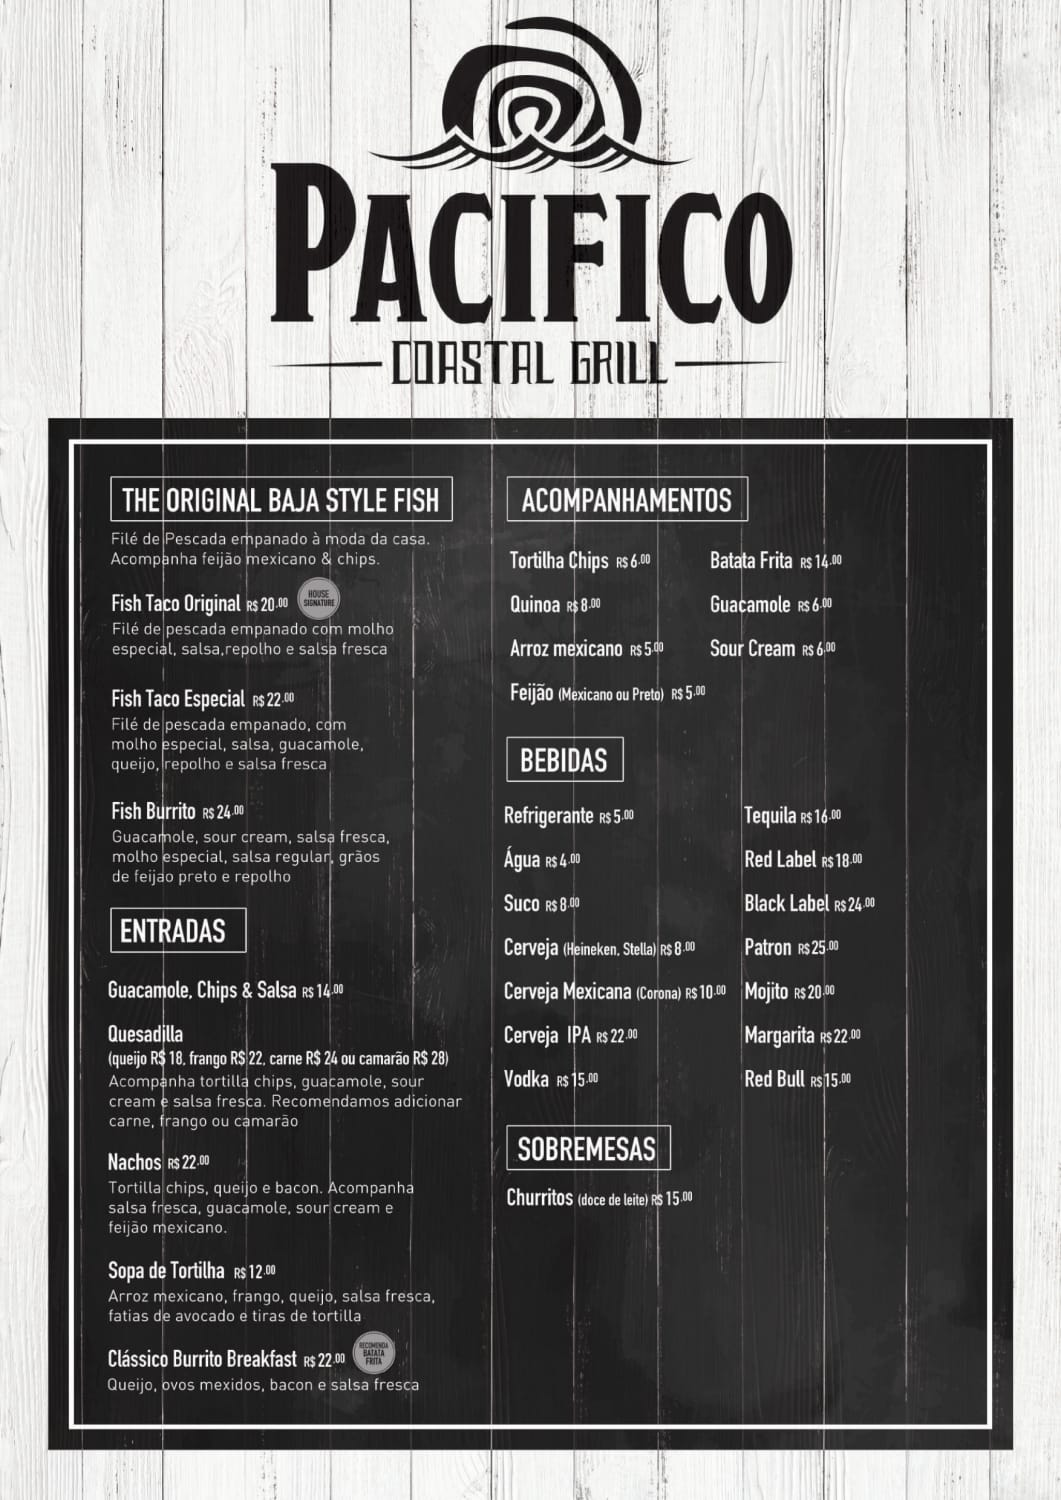 Menu do restaurante Pacifico Coastal Grill - Página 2